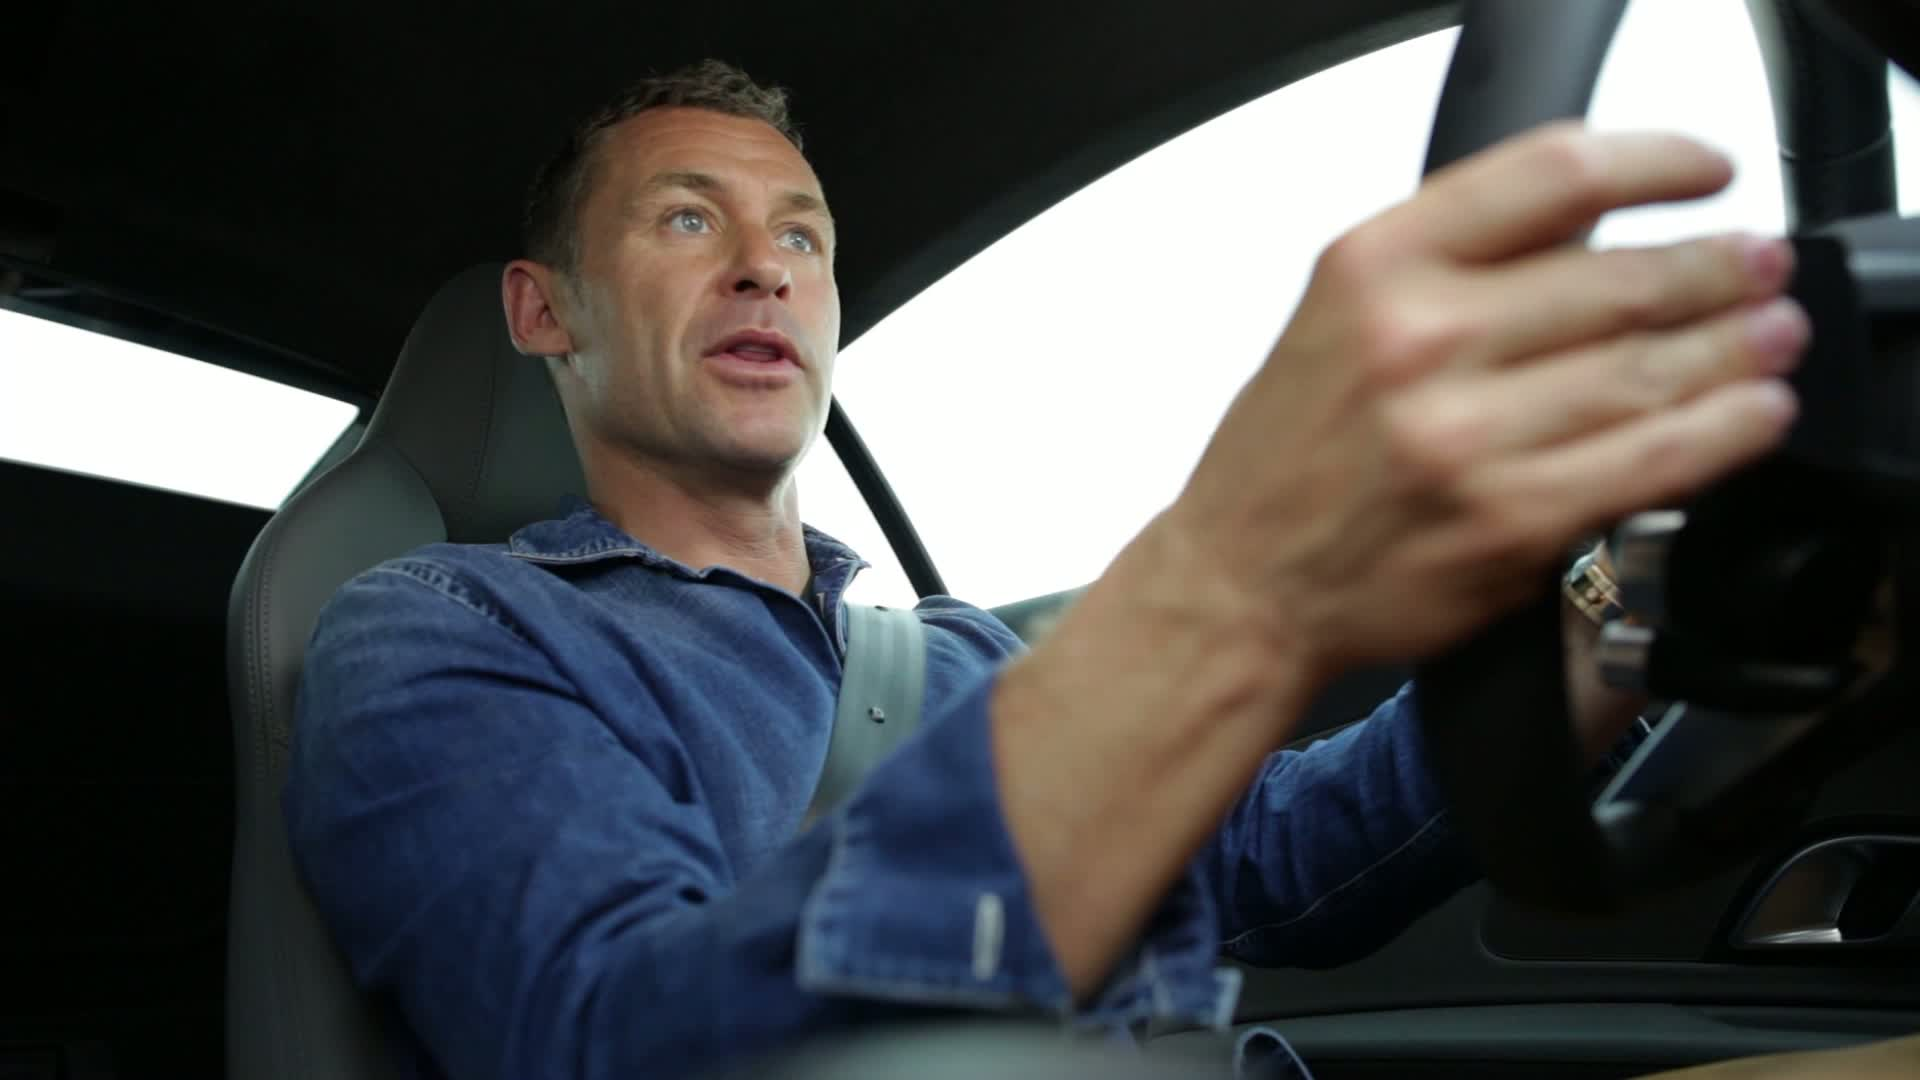 Tom Kristensen is driving the new Audi R8 - Extended Version